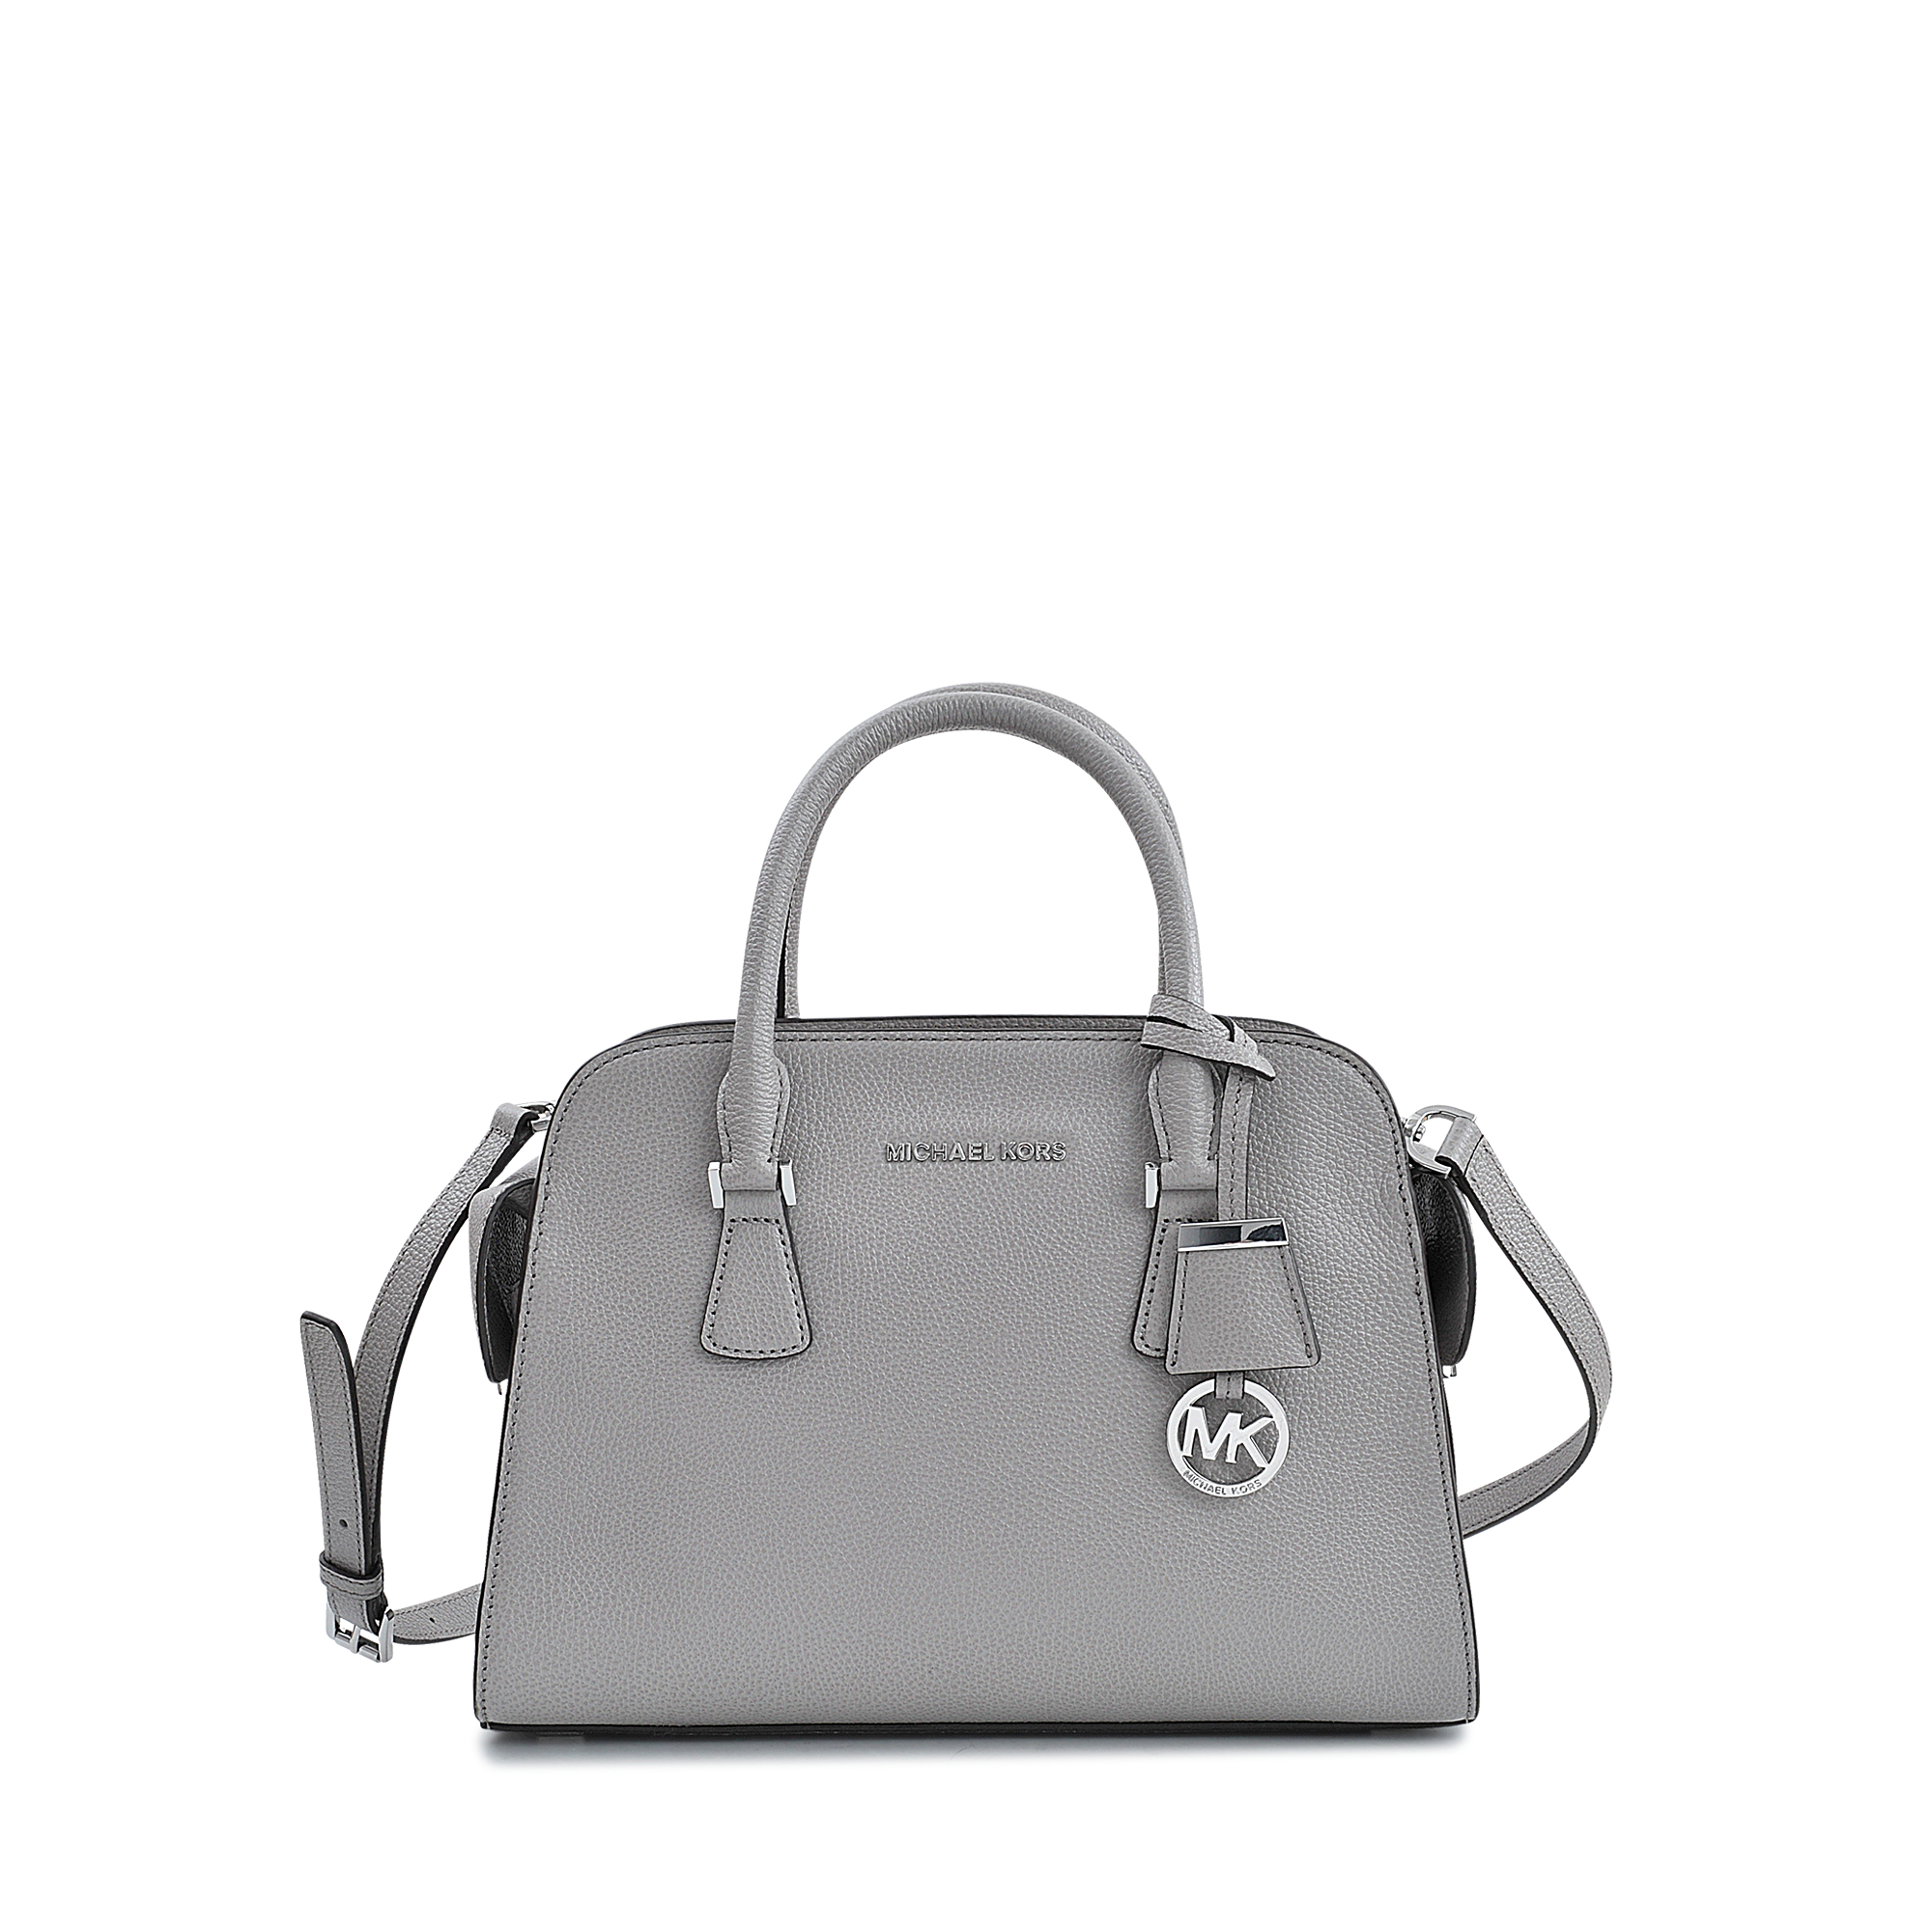 c5434d83826c Michael Kors Harper Medium Satchel Bag in Gray - Lyst